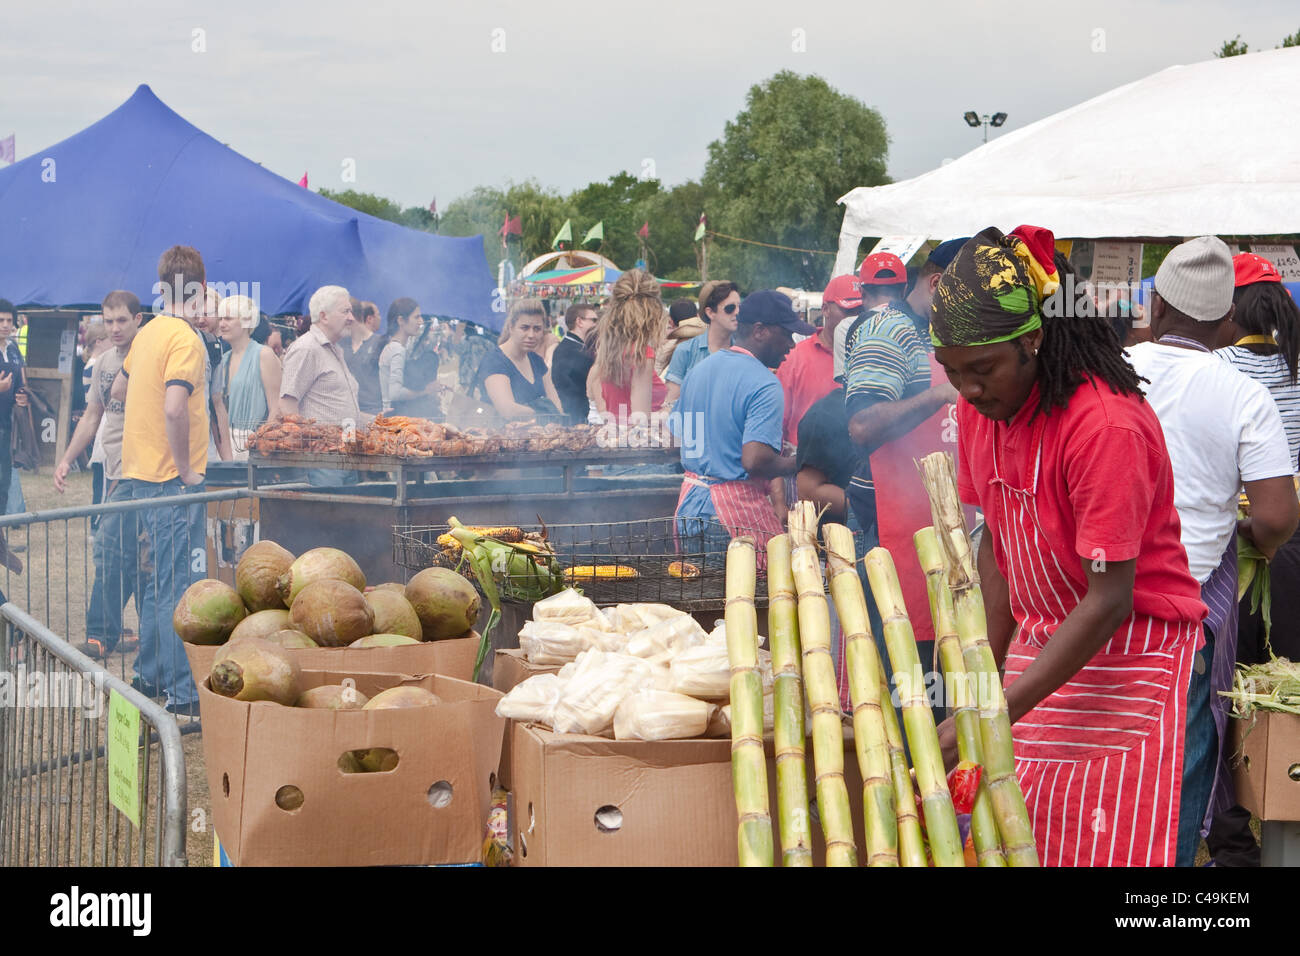 Caribbean food stall at the Cambridge Strawberry Fair 2011 - Stock Image